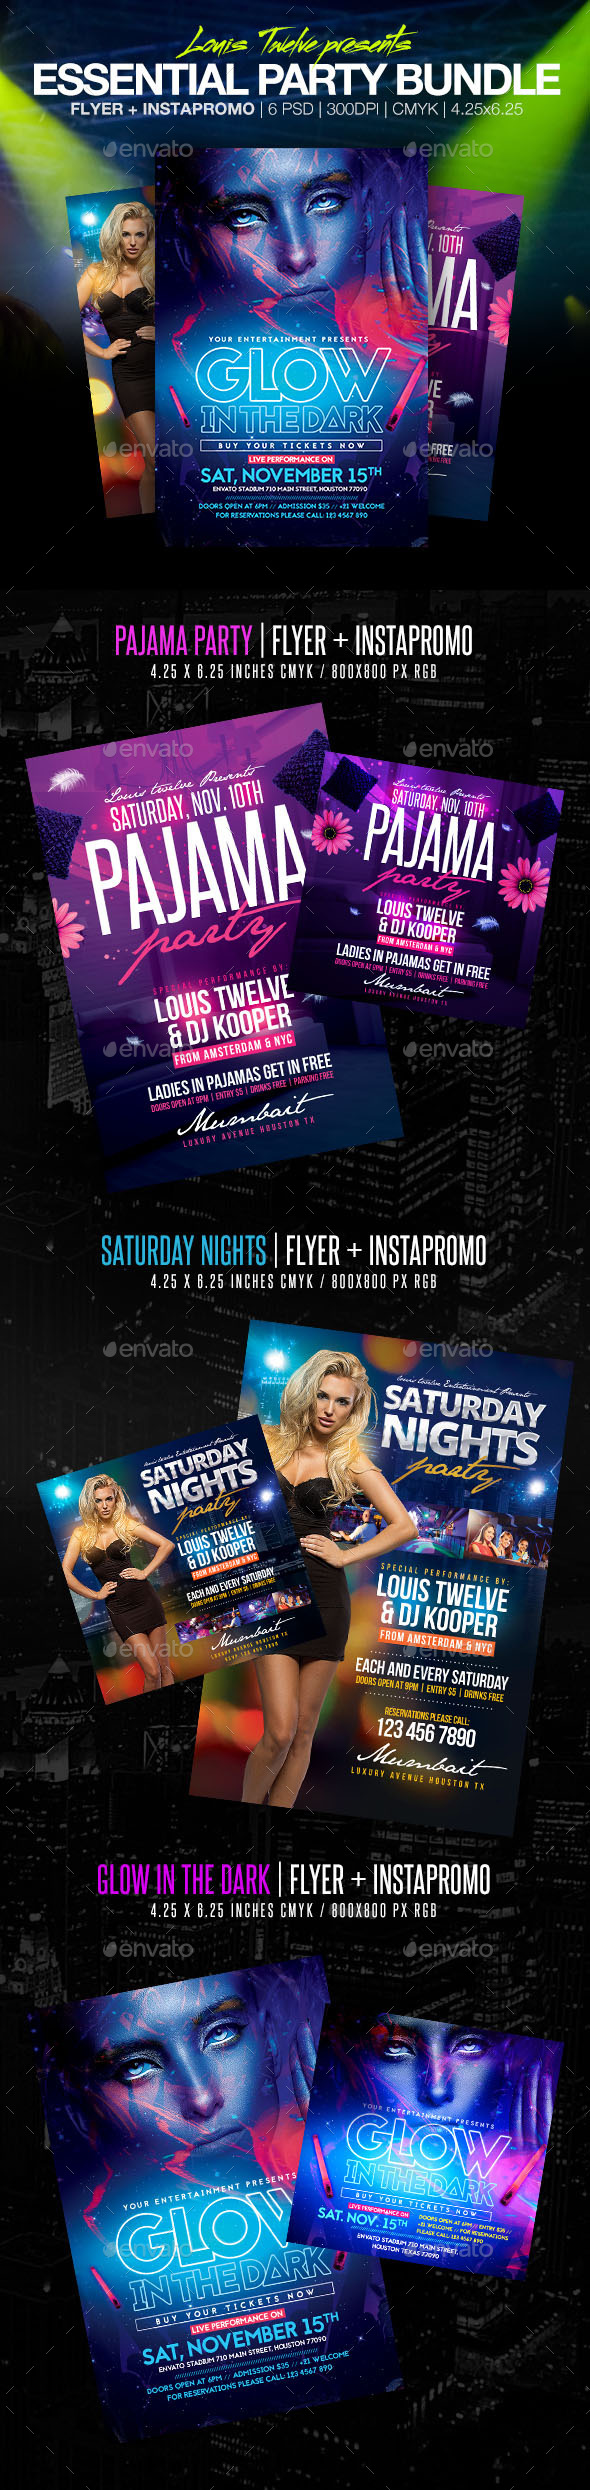 Essential Party Bundle Flyers + Instapromos - Clubs & Parties Events